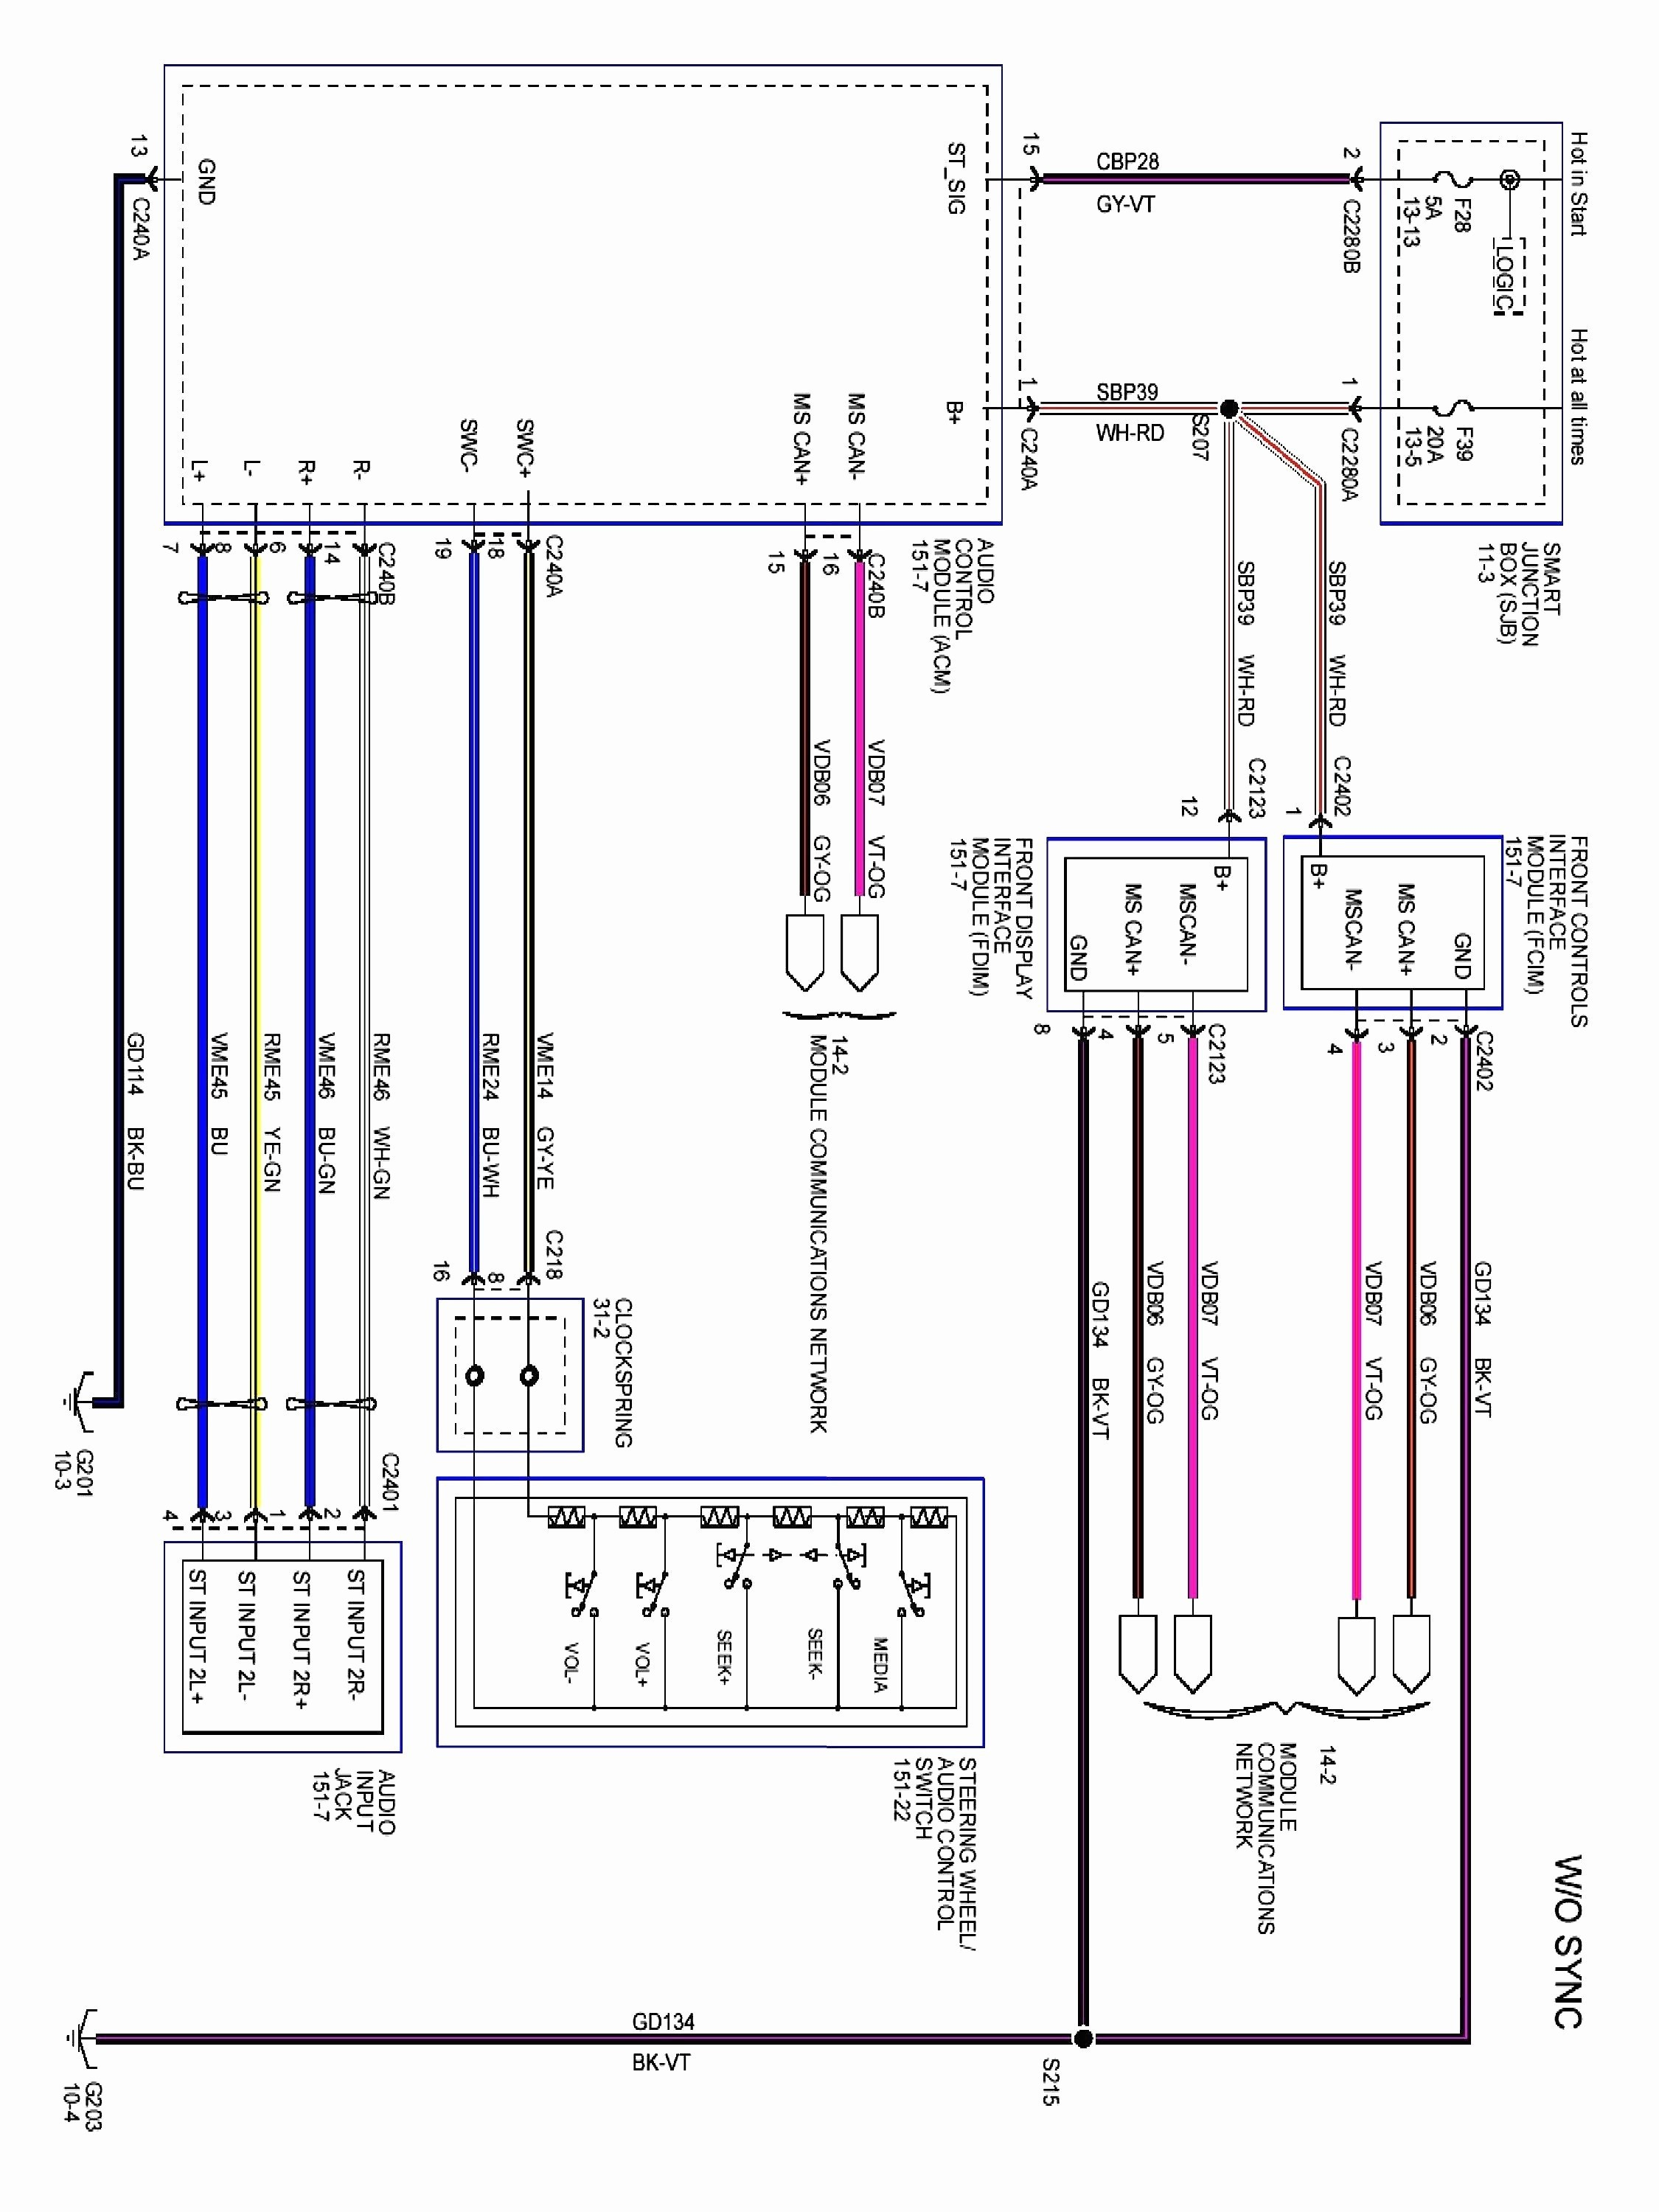 Car Amplifier Diagram Car Amp Wiring Diagram Of Car Amplifier Diagram Multiple Amplifier Wiring Diagram Best Amp Wiring Diagram Car